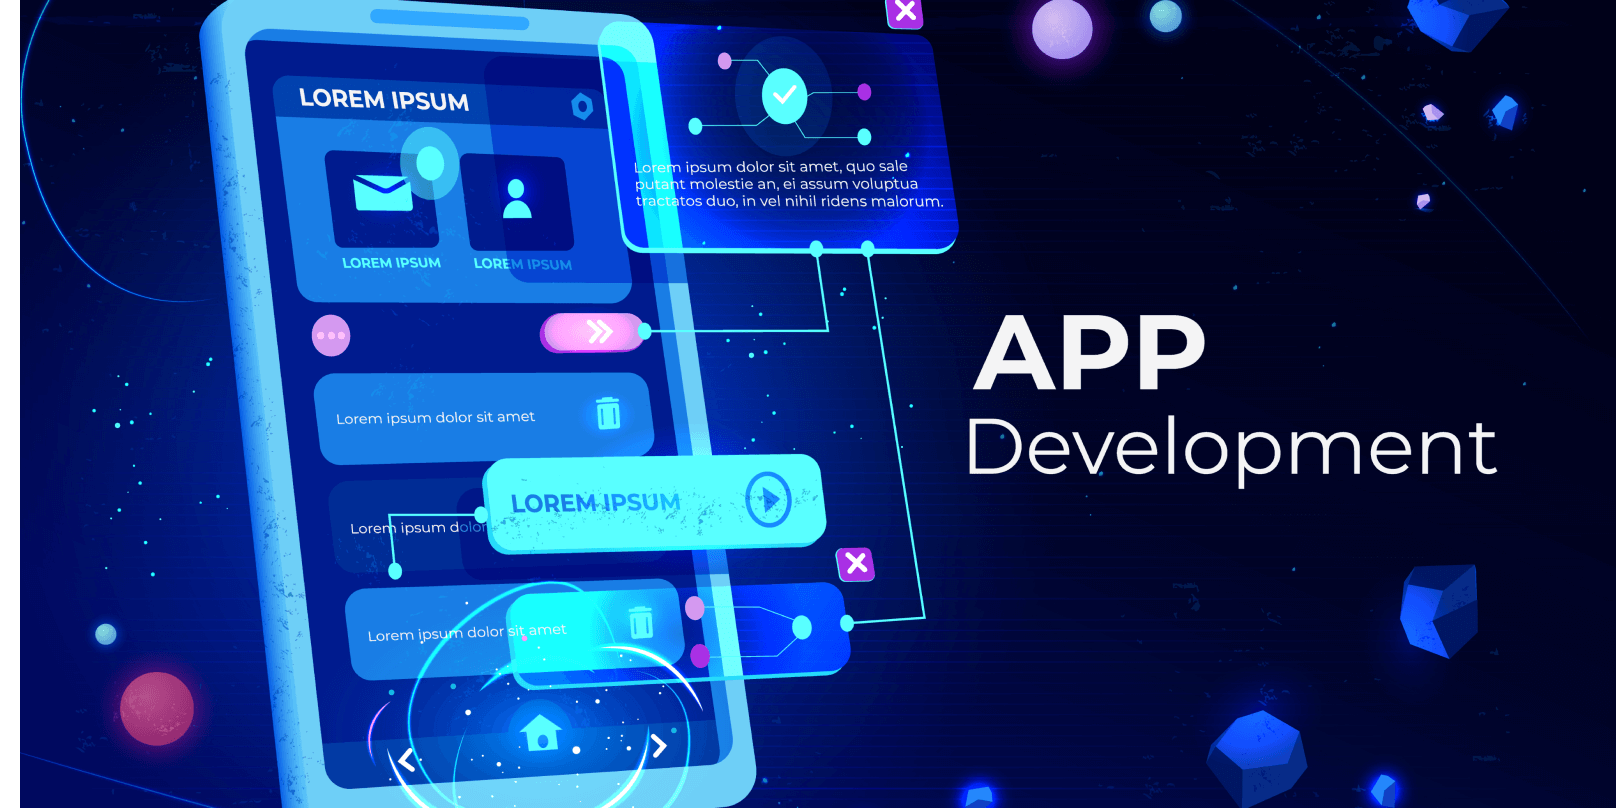 App developement